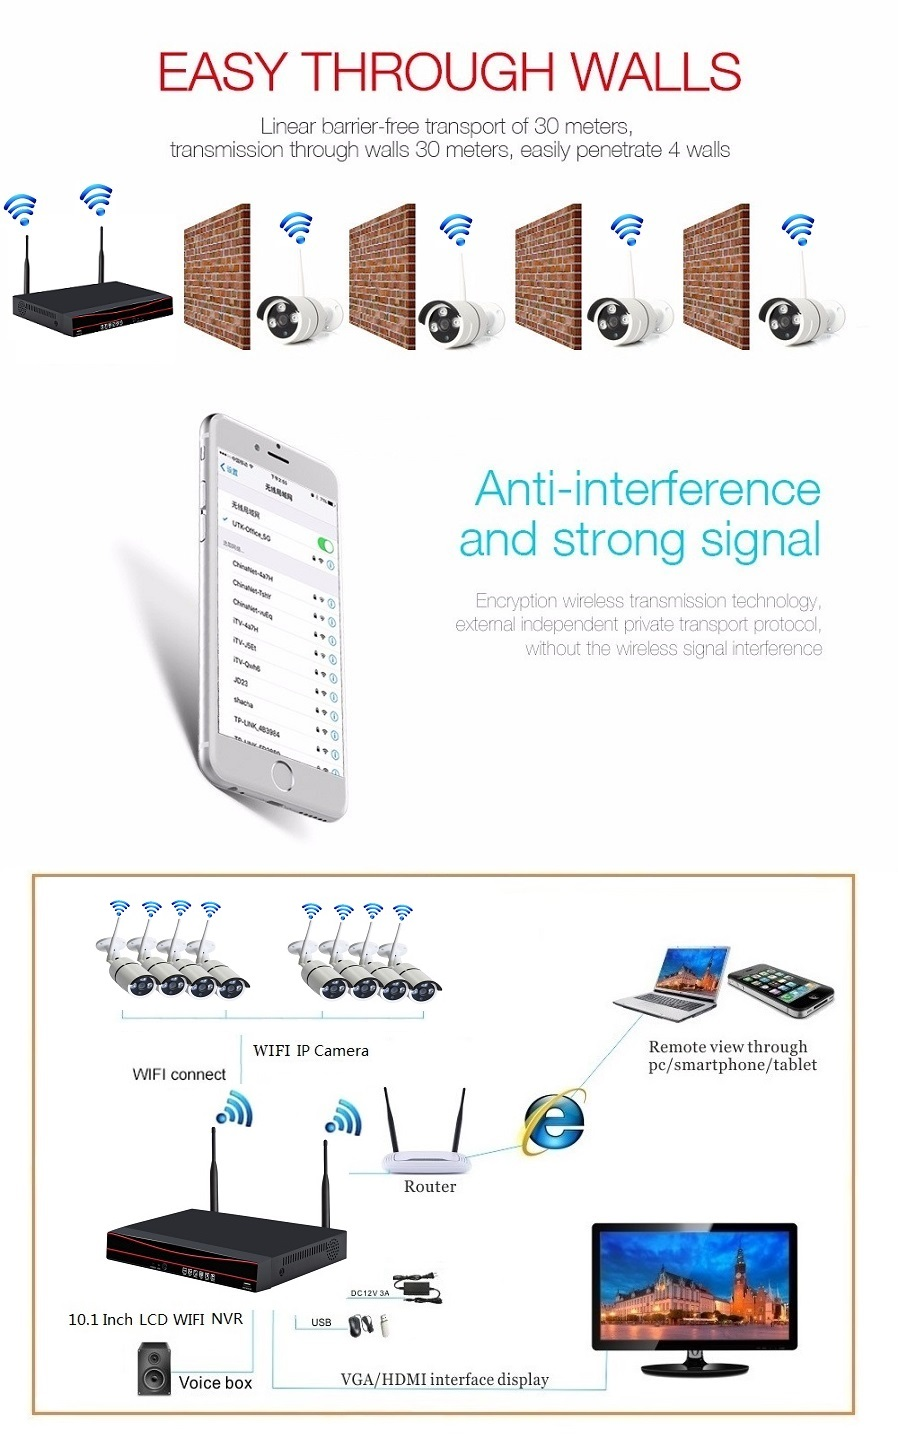 Strongshine 960p Wireless Cctv 8ch H264 Wifi Nvr Kit Security Wiring Diagram Step2 Connect The And Router By Internet Cablehdmi Or Vga With Interface Display Step3 View Live Video On Screen In Minutes